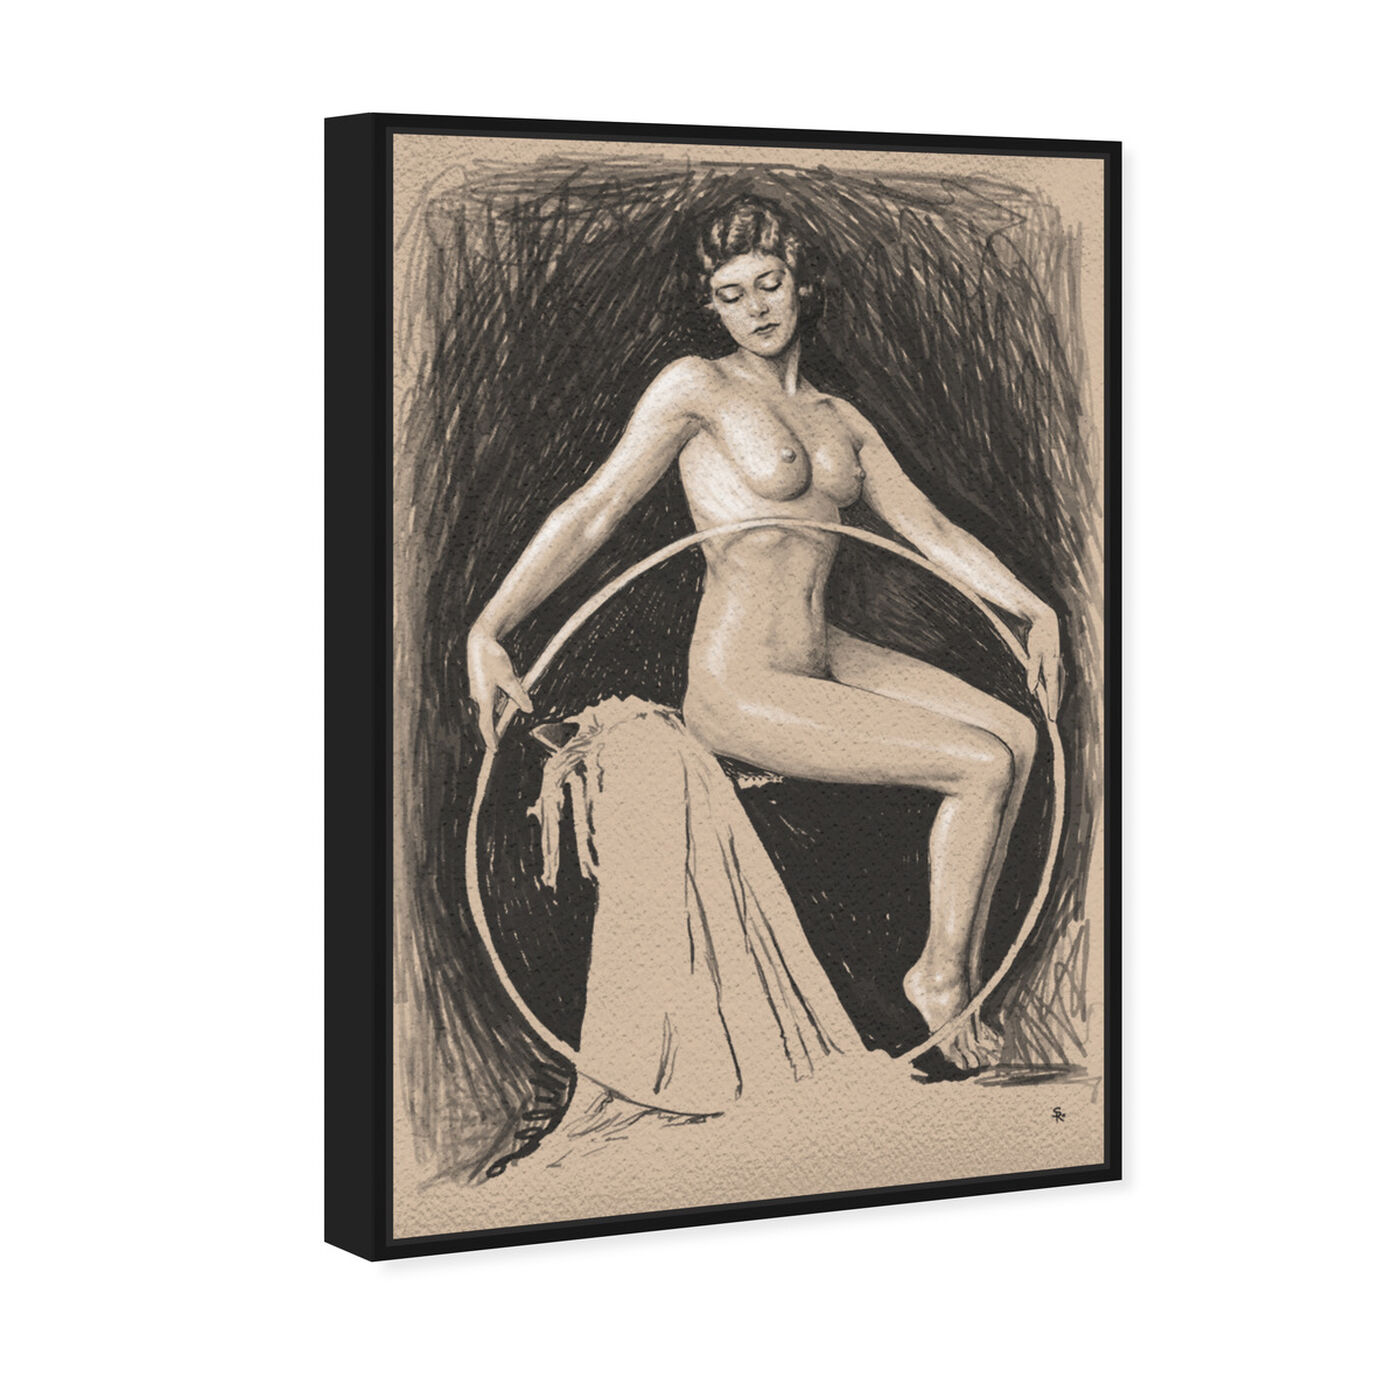 Angled view of Nude Woman with Hoop featuring classic and figurative and nudes art.